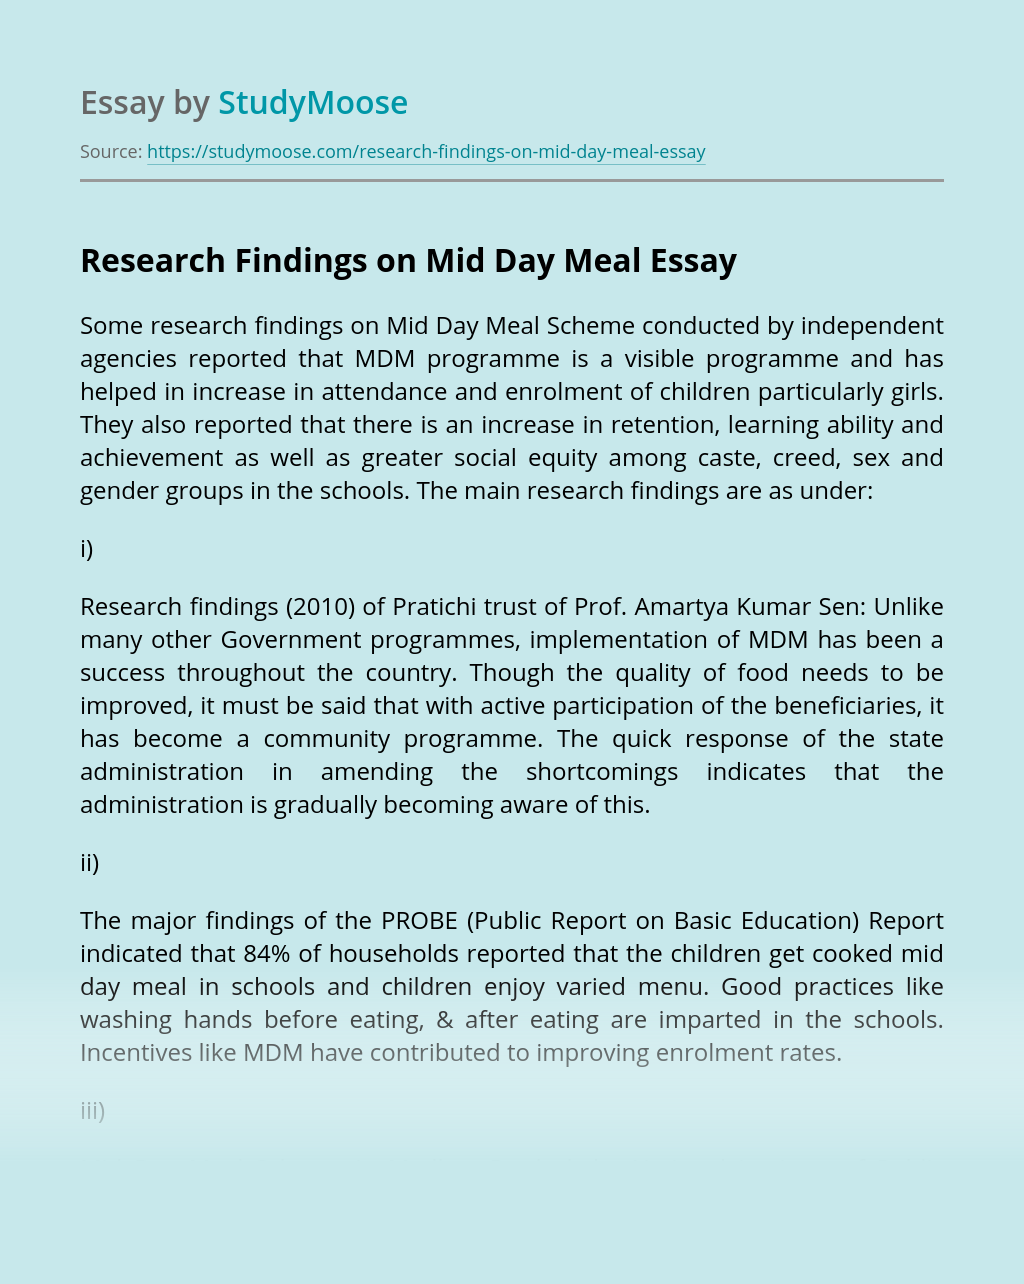 Research Findings on Mid Day Meal